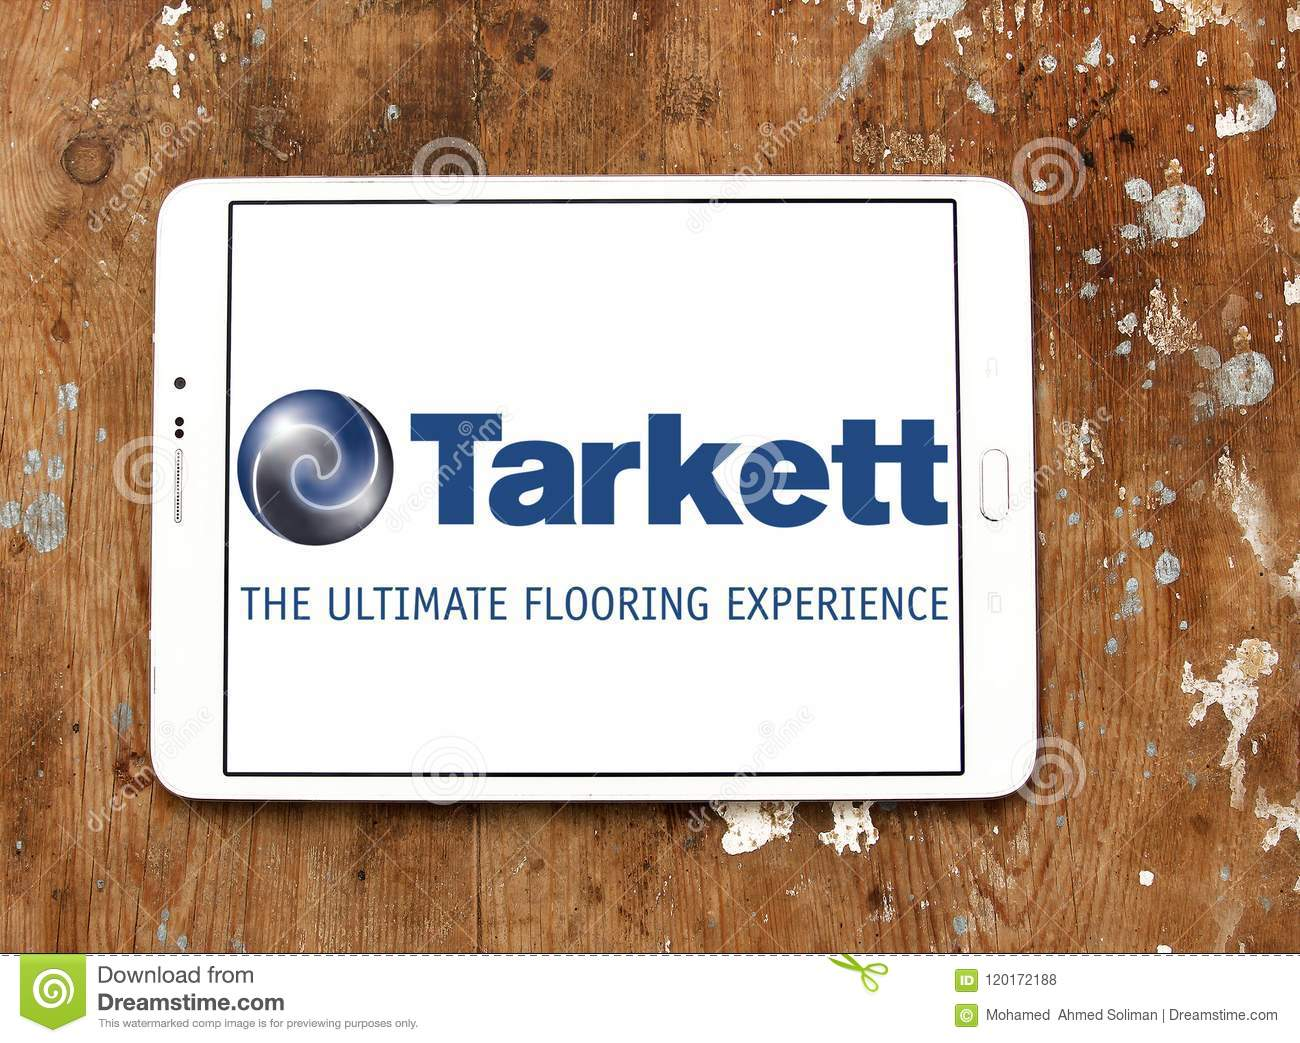 Logo Of Tarkett Company On Samsung Tablet Is A French Multinational Corporation Specialising In The Production Floor And Wall Coverings